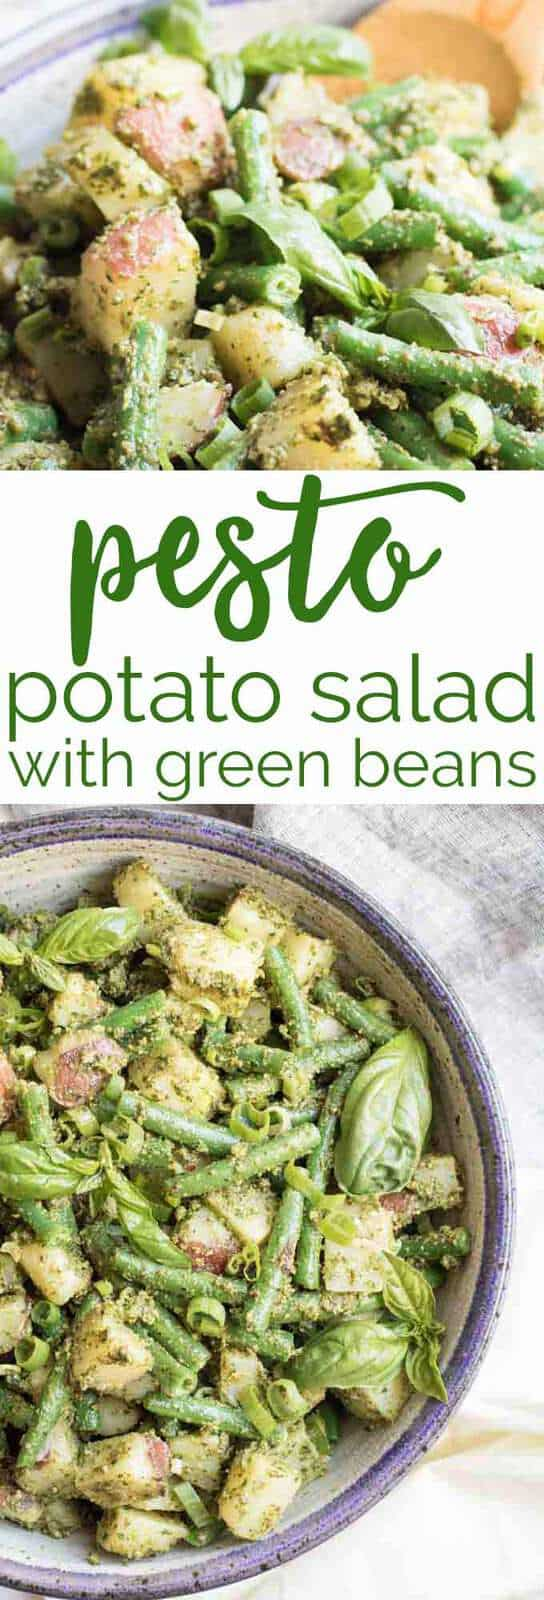 Fresh basil pesto with almonds is the perfect pair to creamy potatoes and crunchy green beans in this quick and easy Pesto Potato Salad.